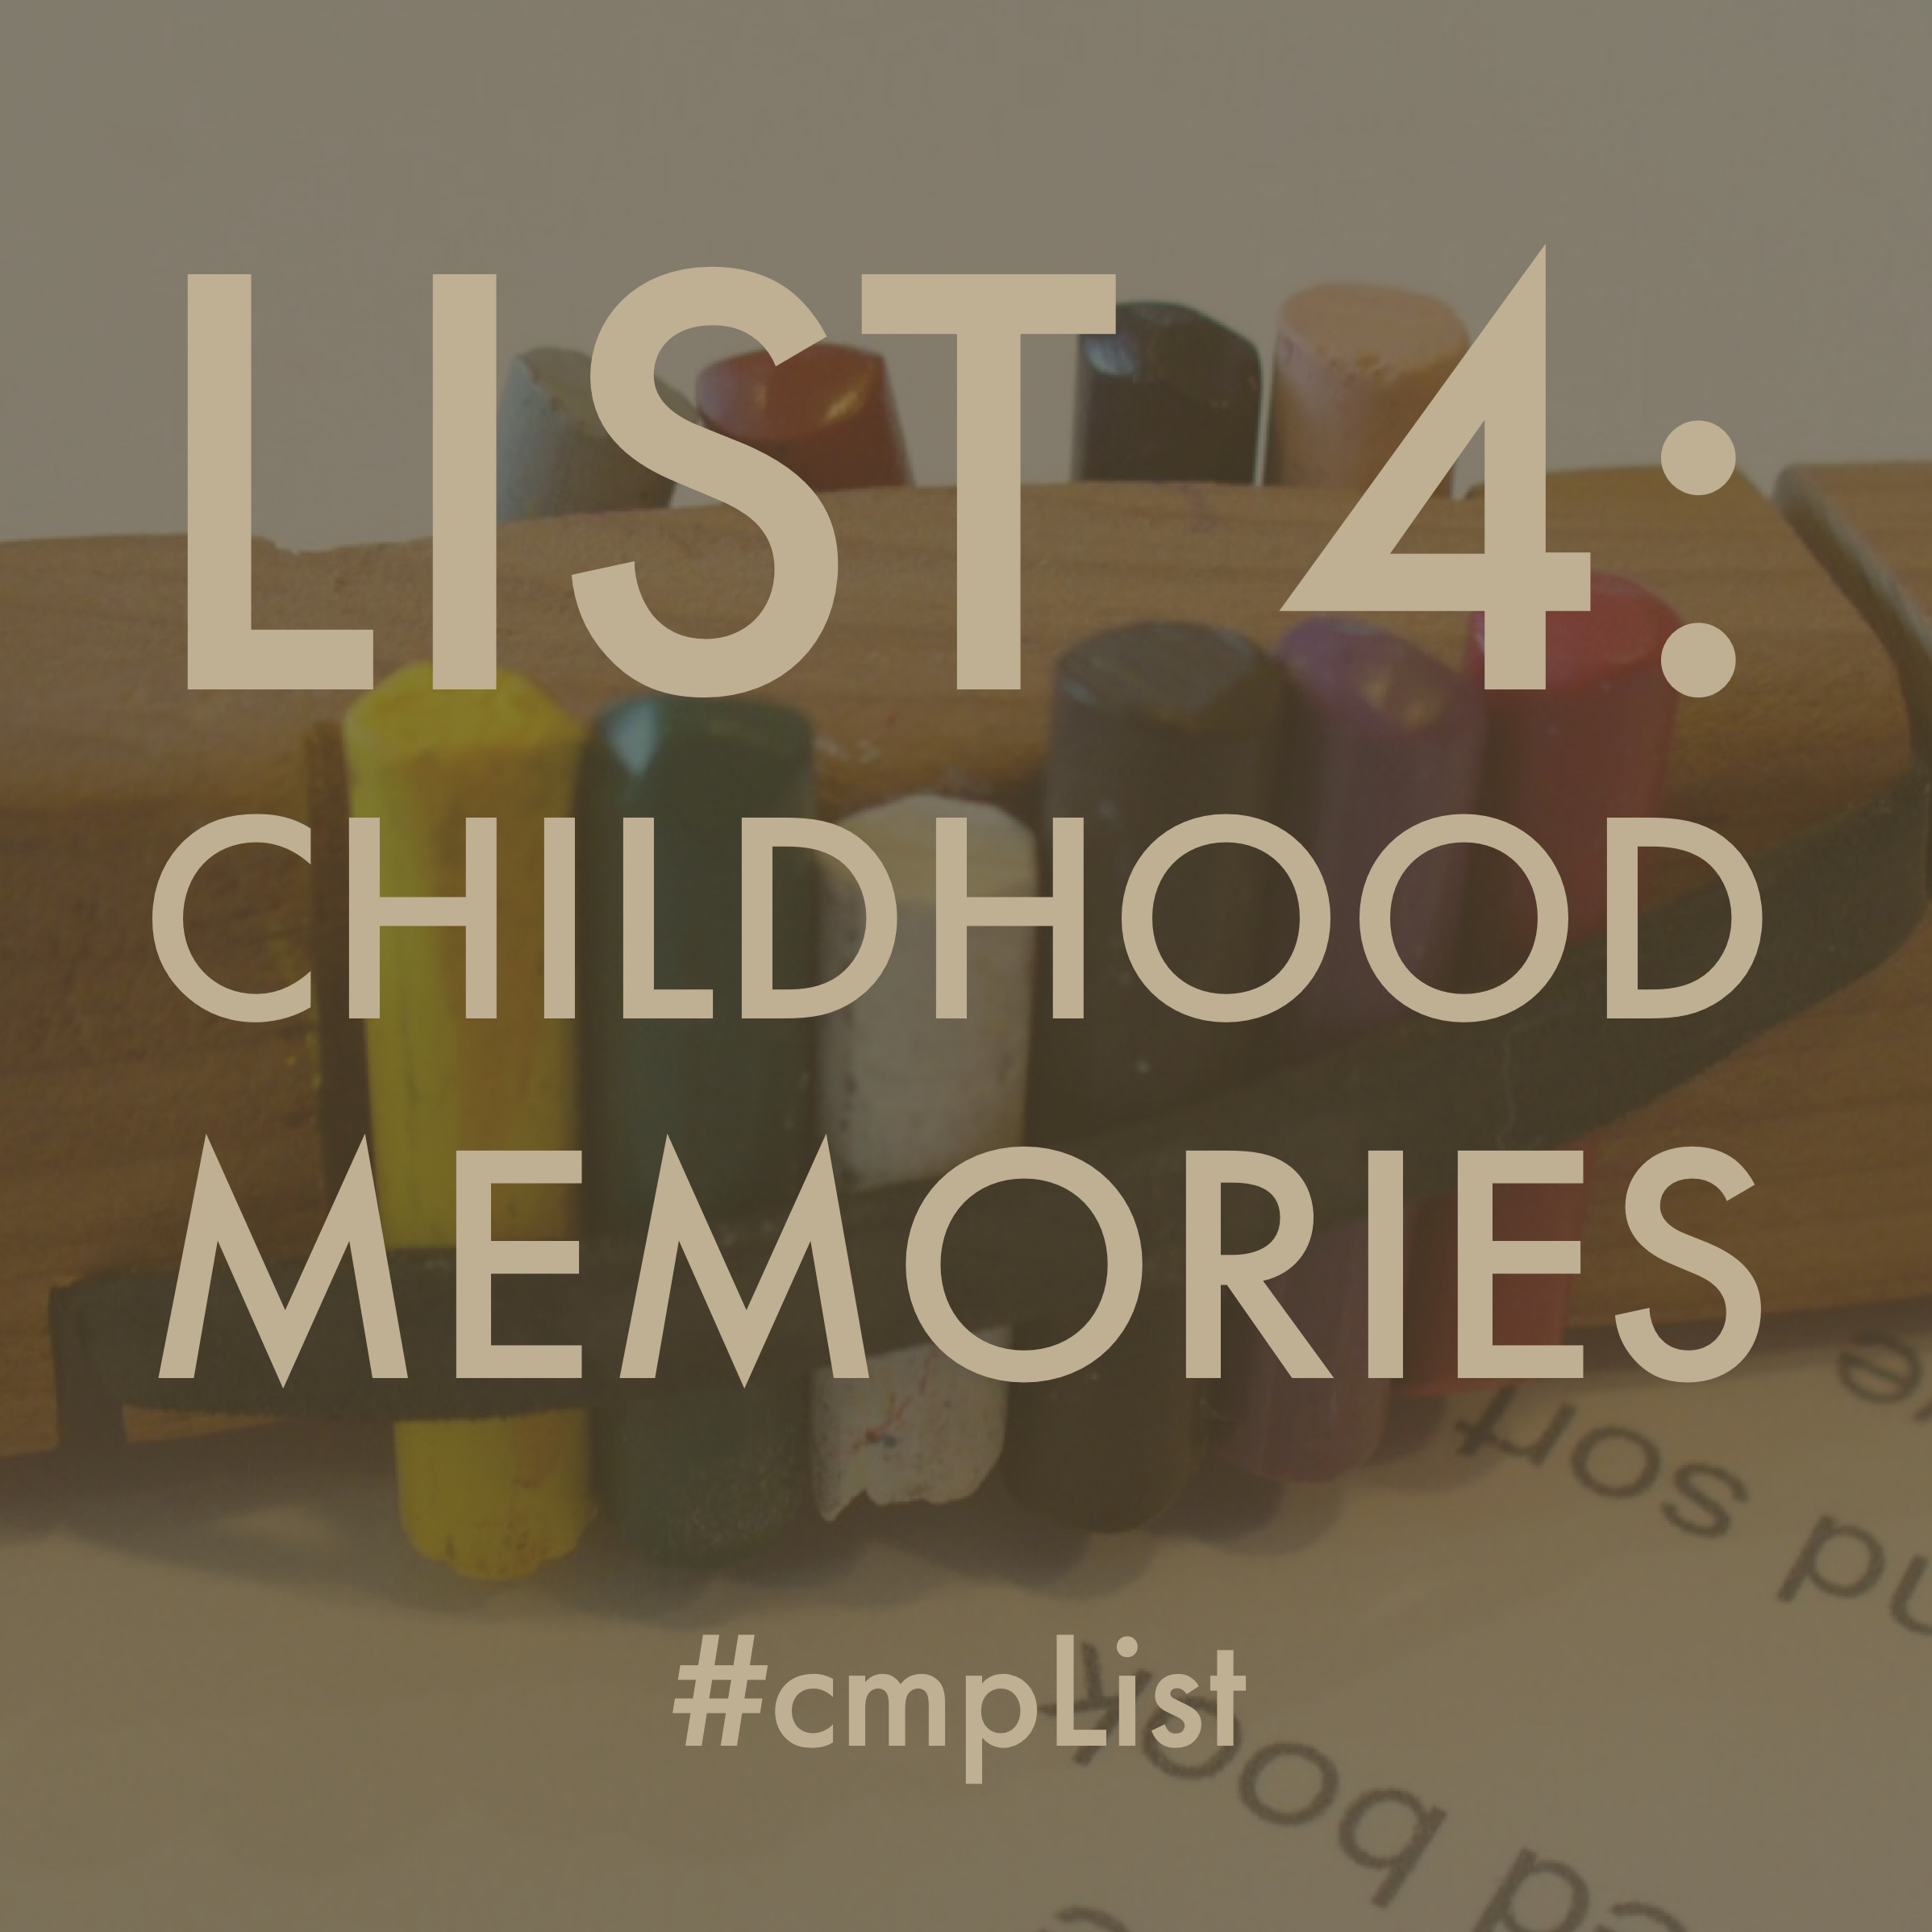 CMP List 4: Childhood memories